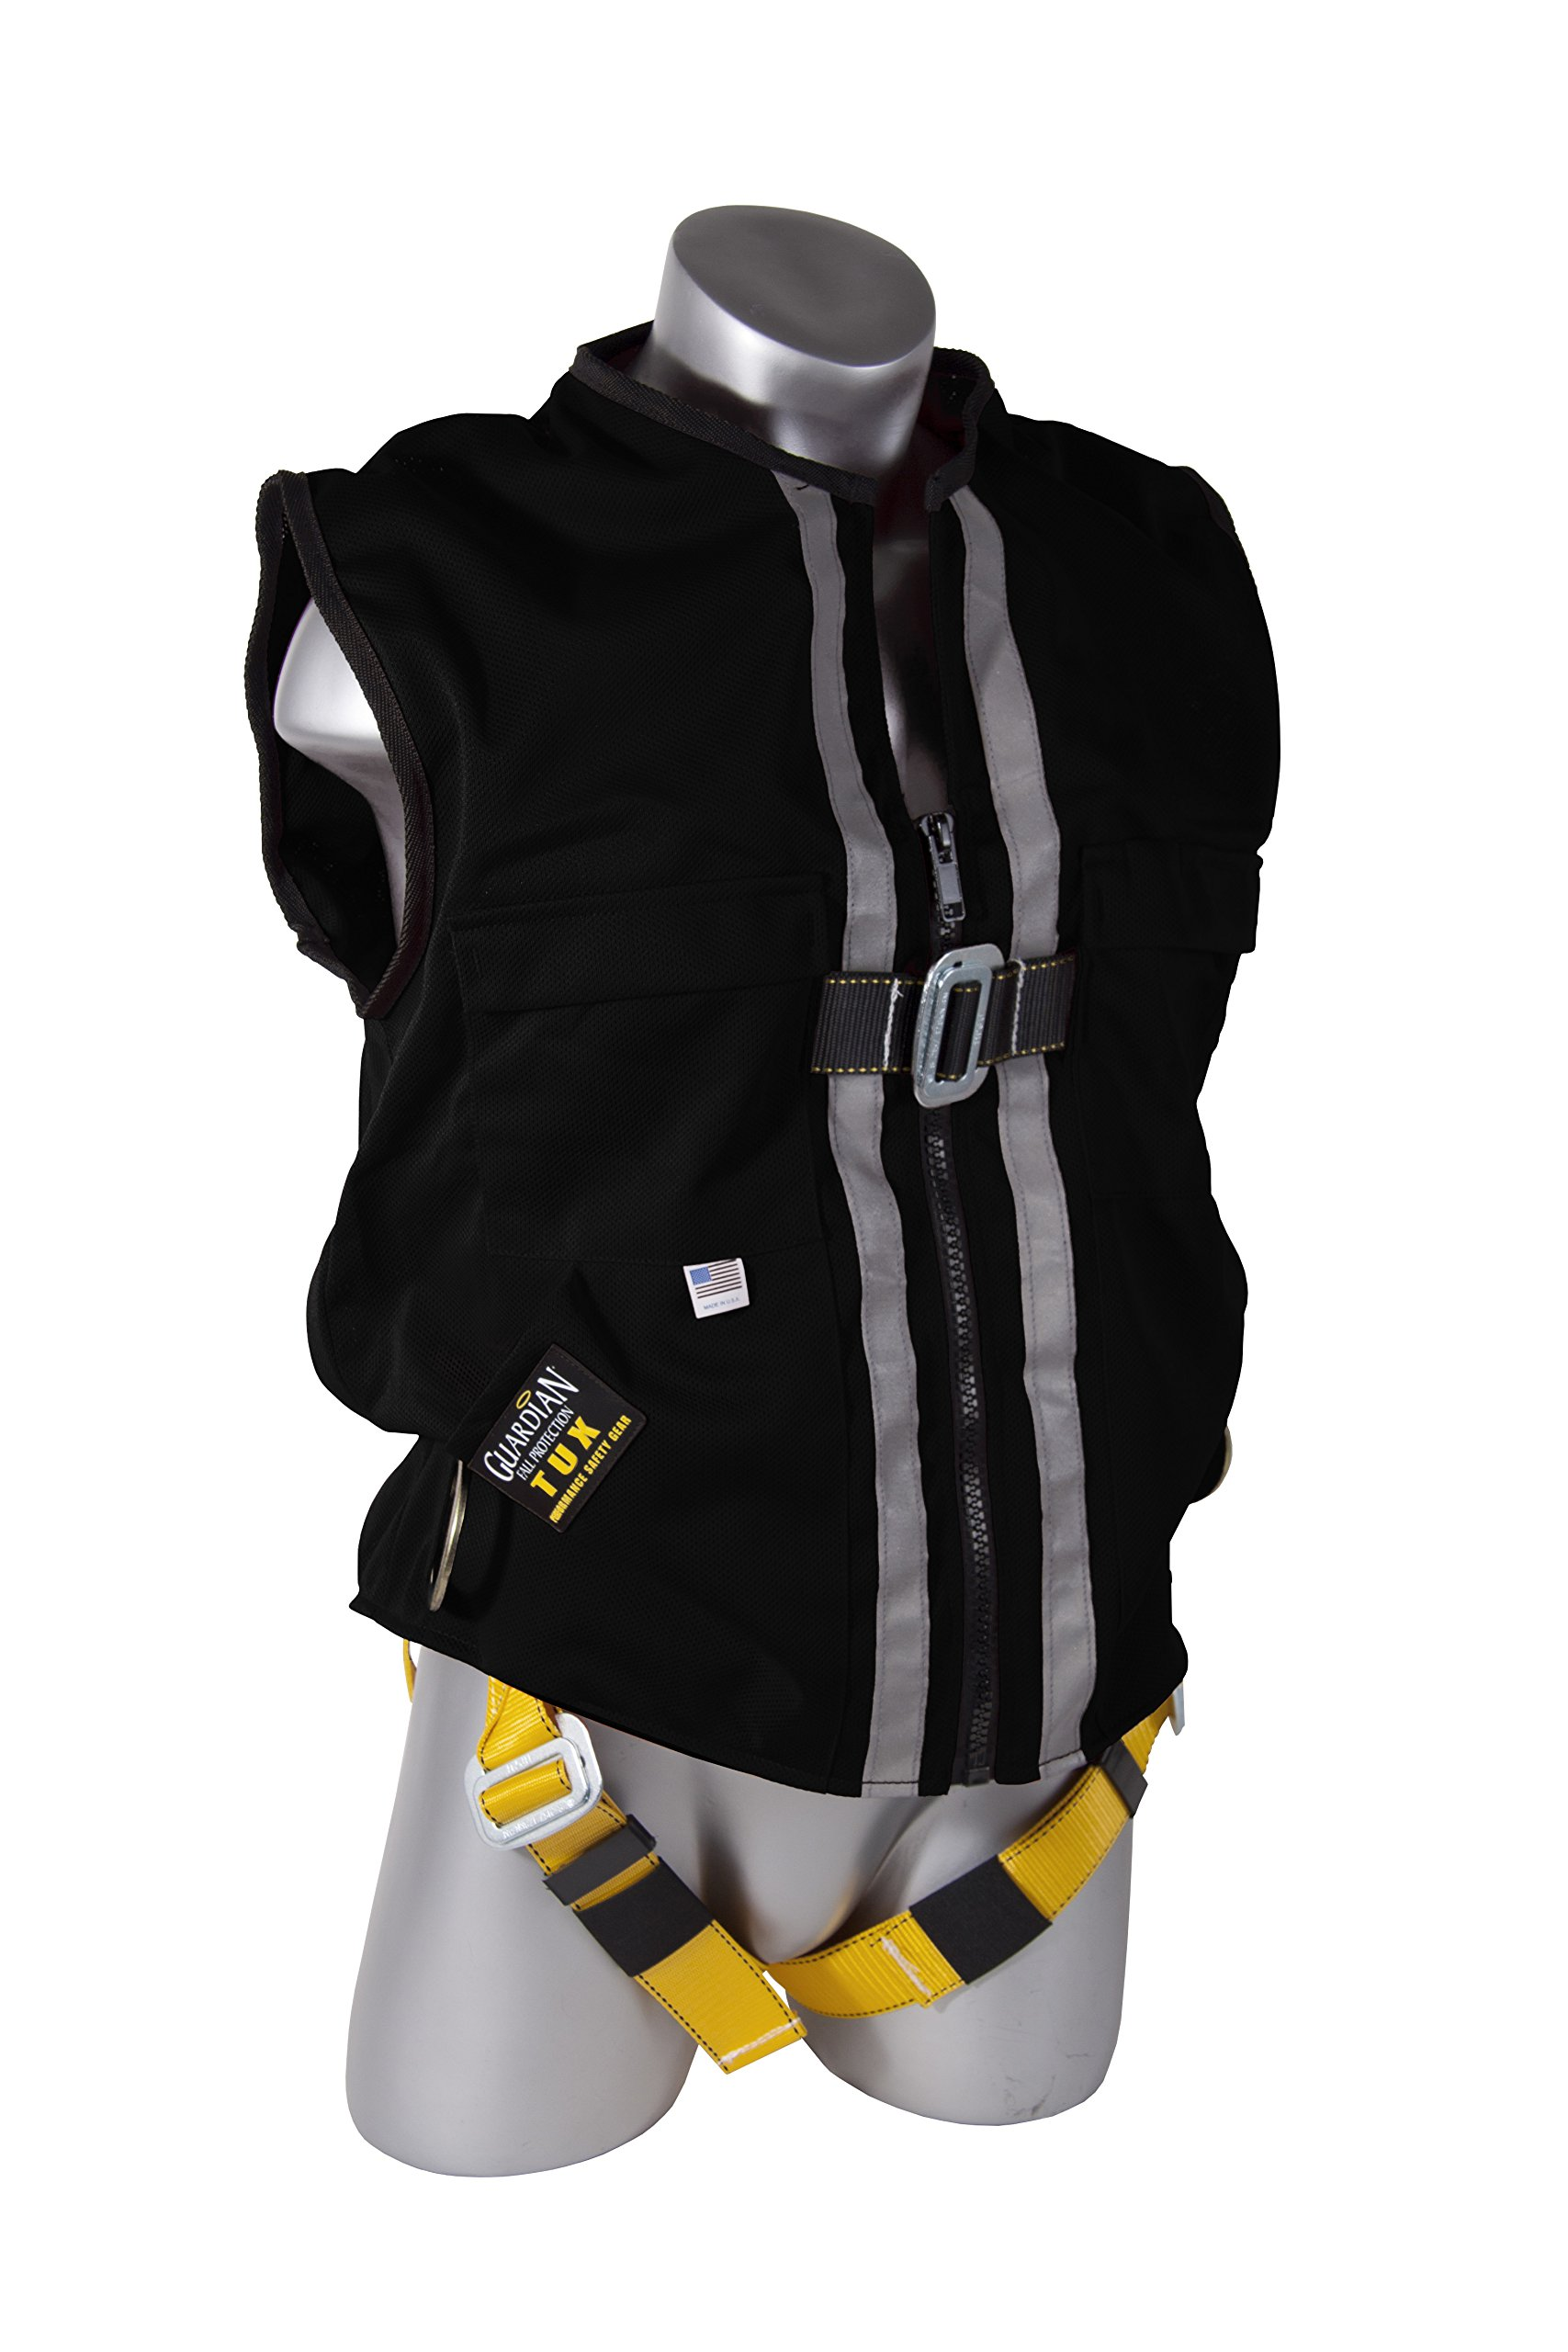 Guardian Fall Protection 02630 Black Mesh Construction Tux Harness, XL